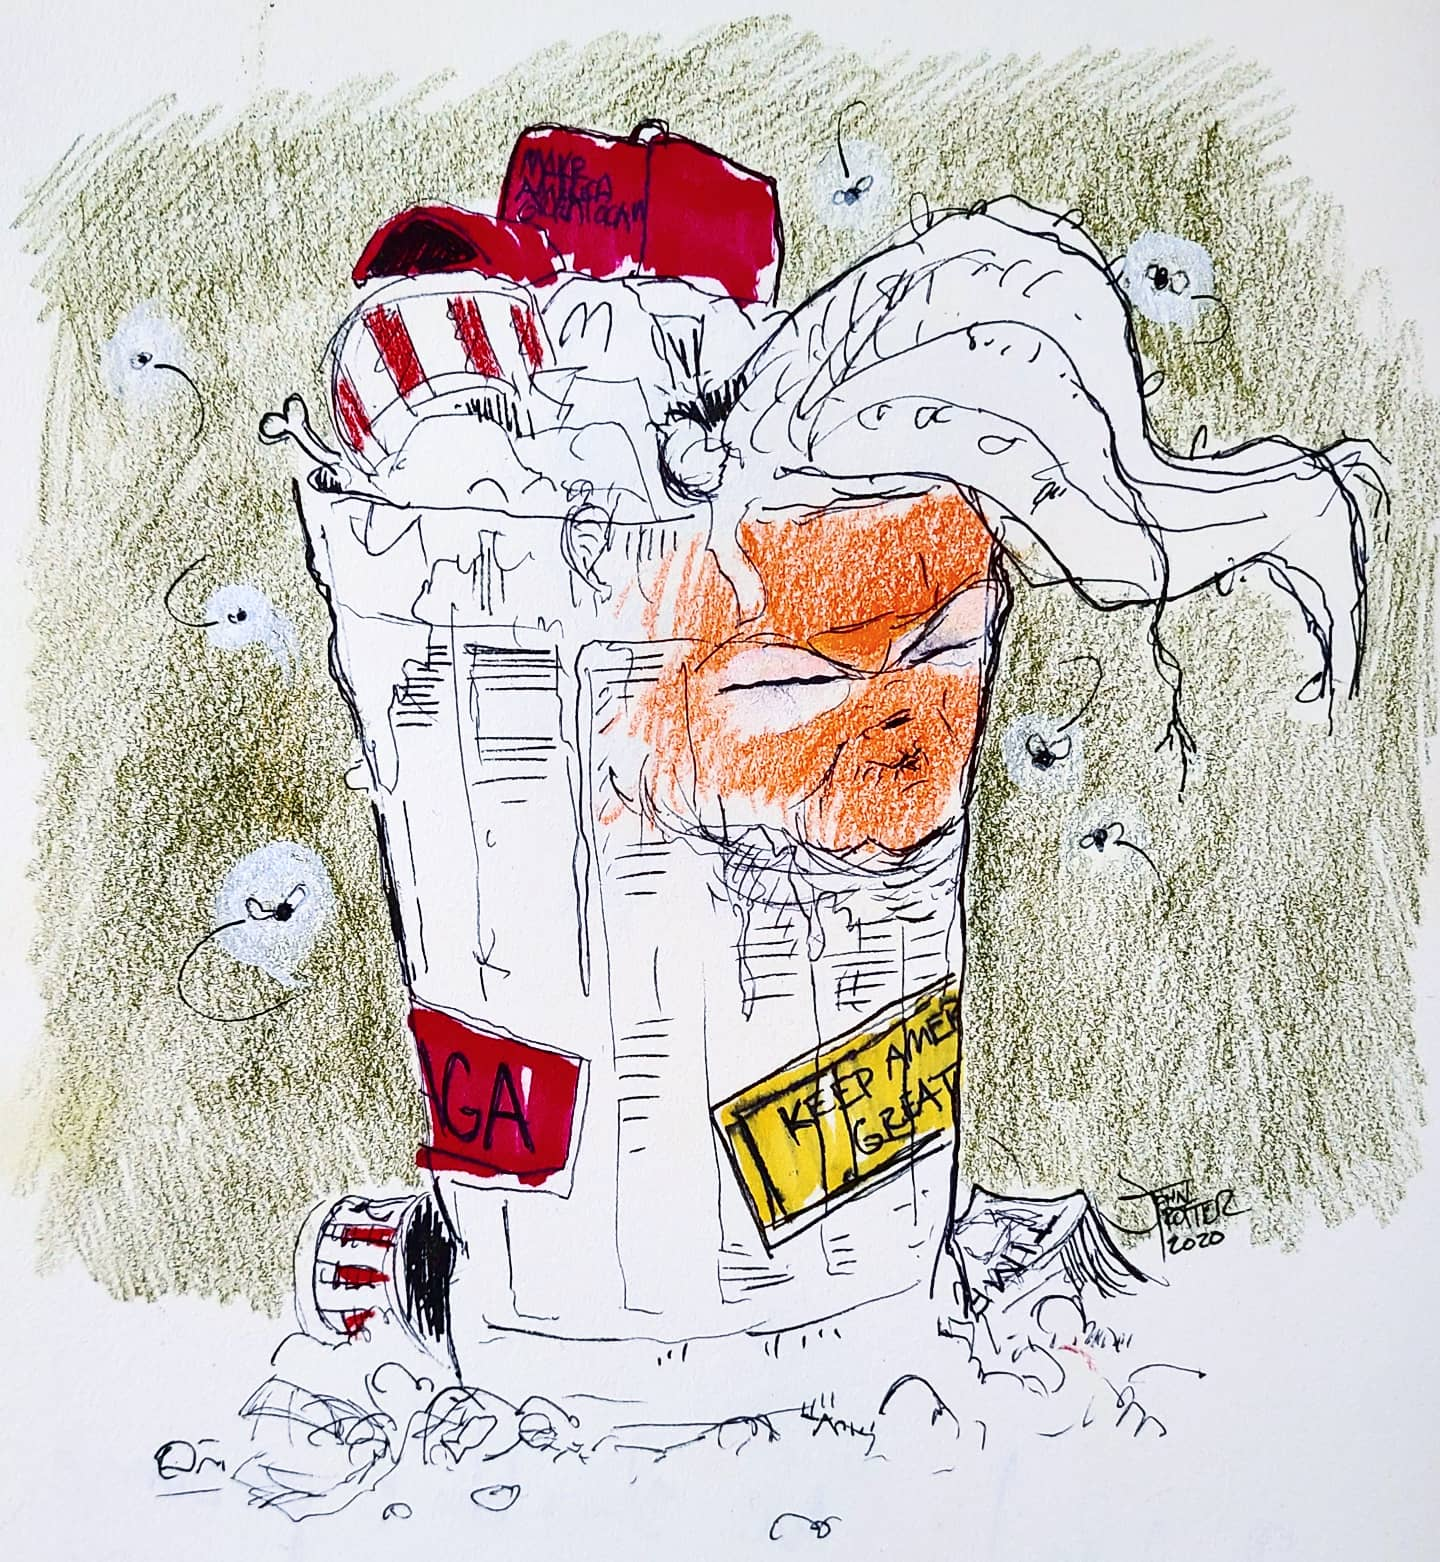 Garbage Man Mixed Media on paper